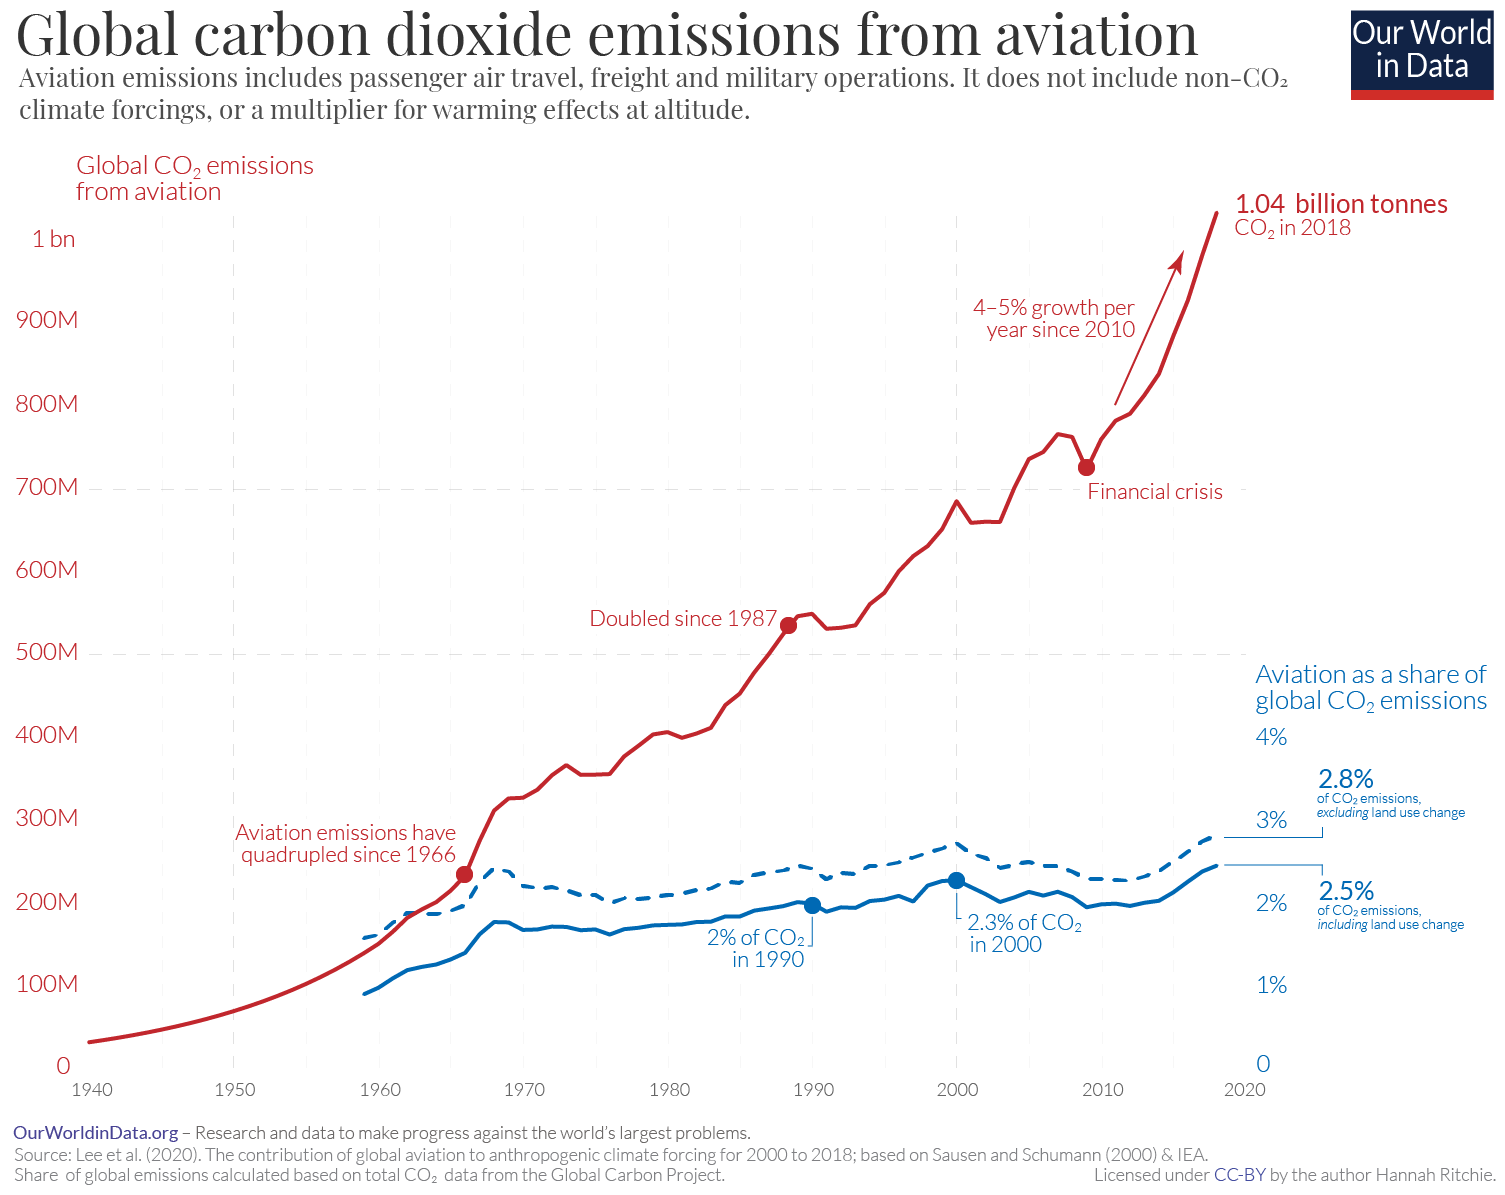 Graph showing the rise in global carbon dioxide emissions over time from 1940 to 2020.